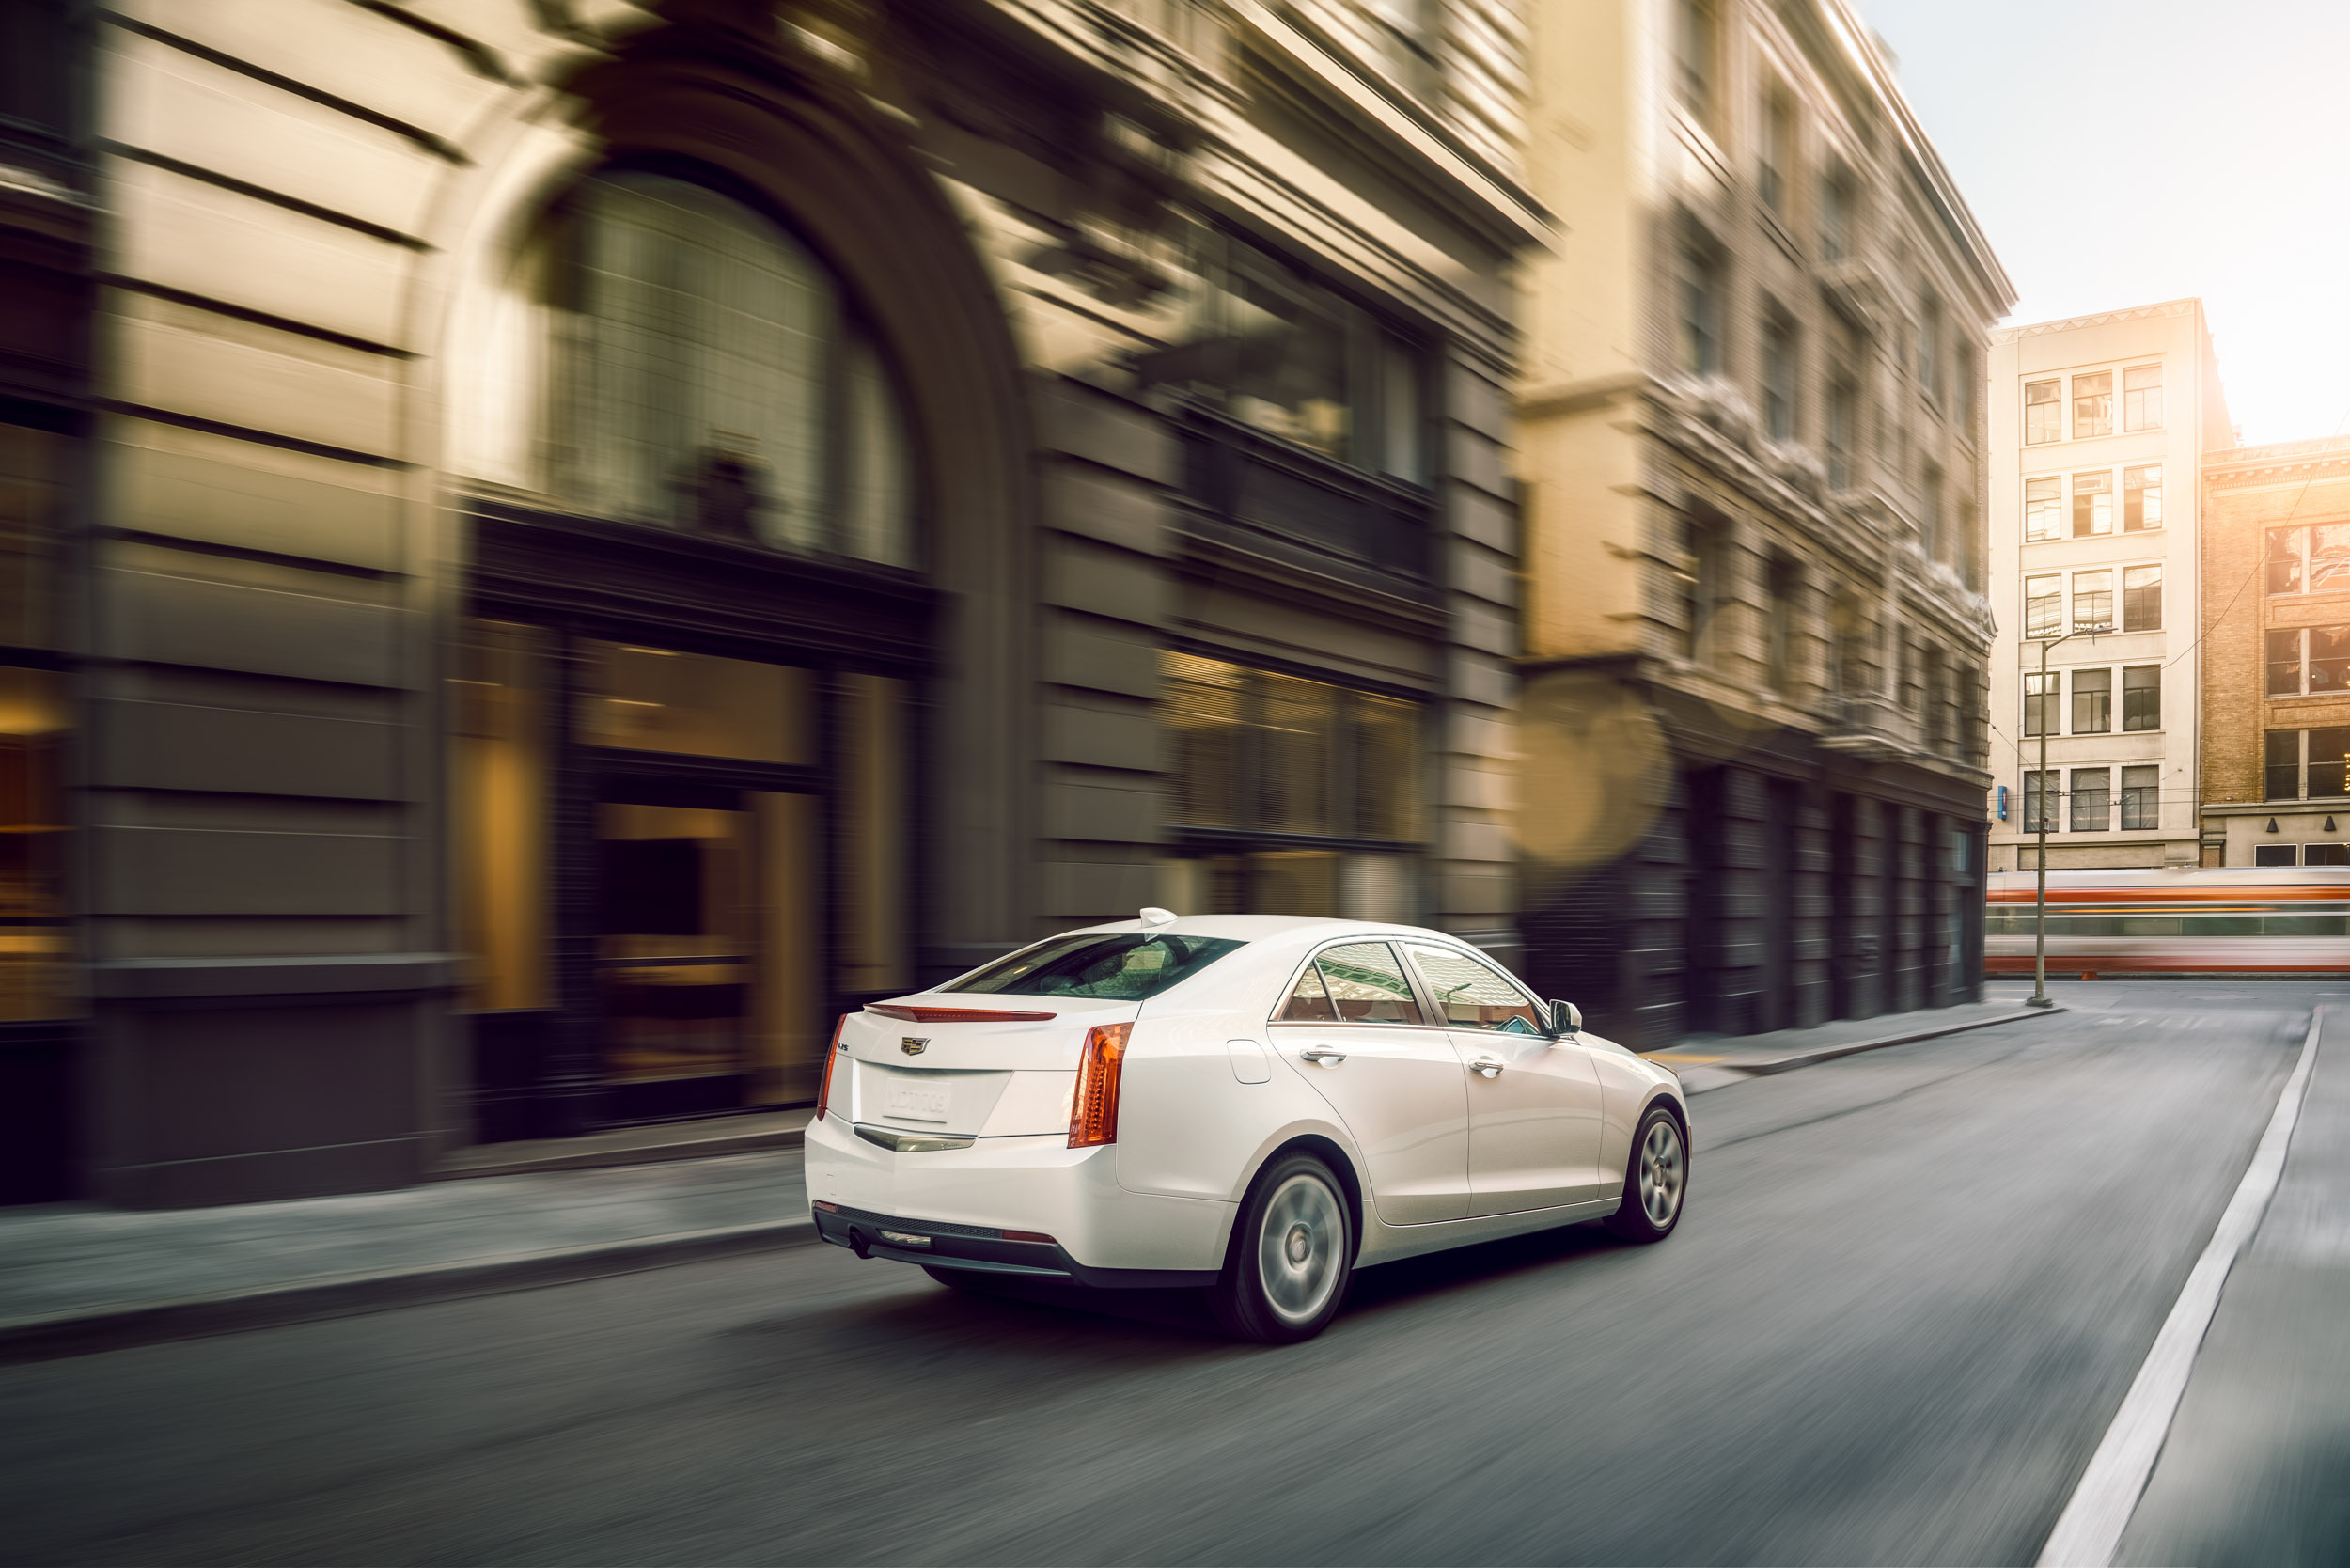 White Cadillac ATS driving down elegant road in San Francisco